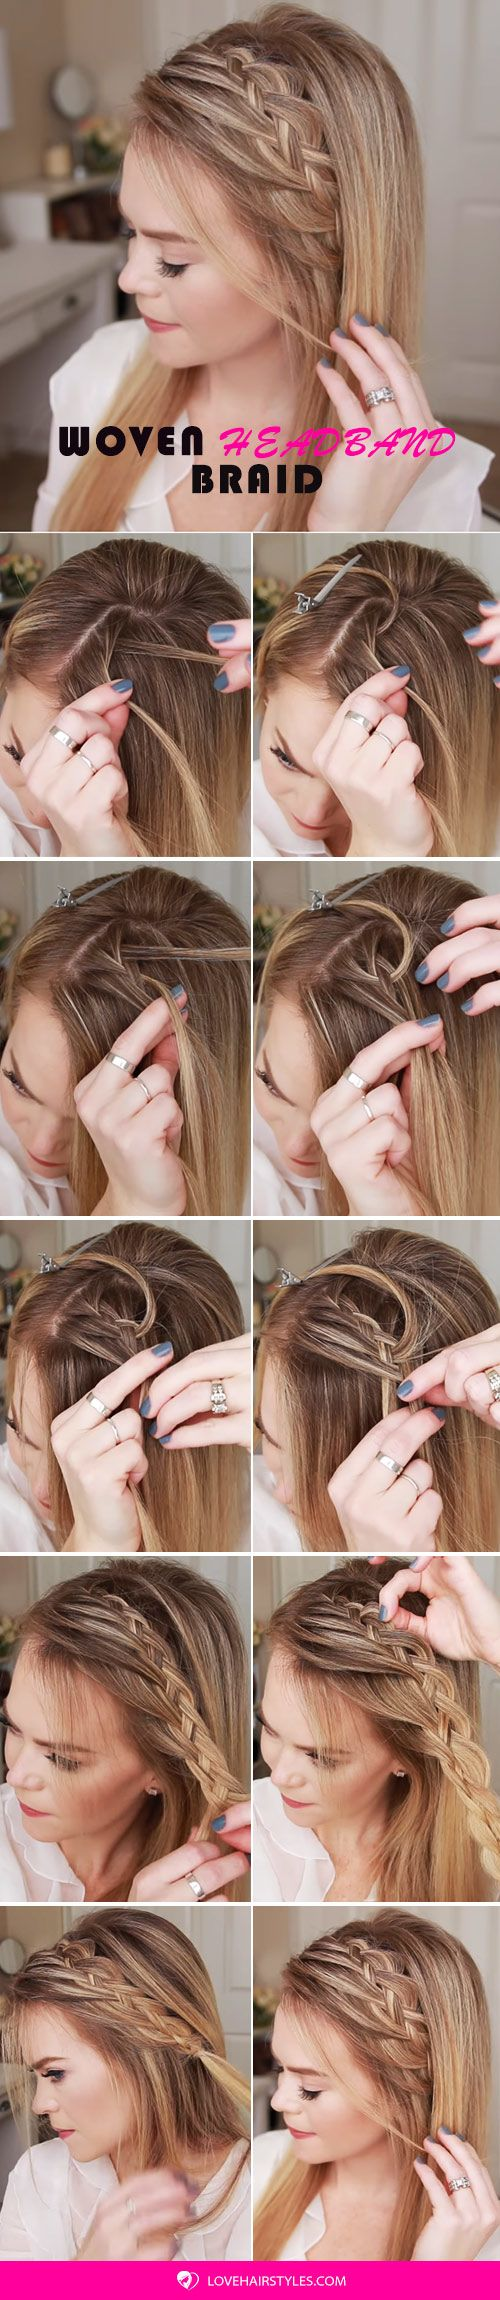 Woven Crown Braid Hair Tutorial #crownbraids #braids